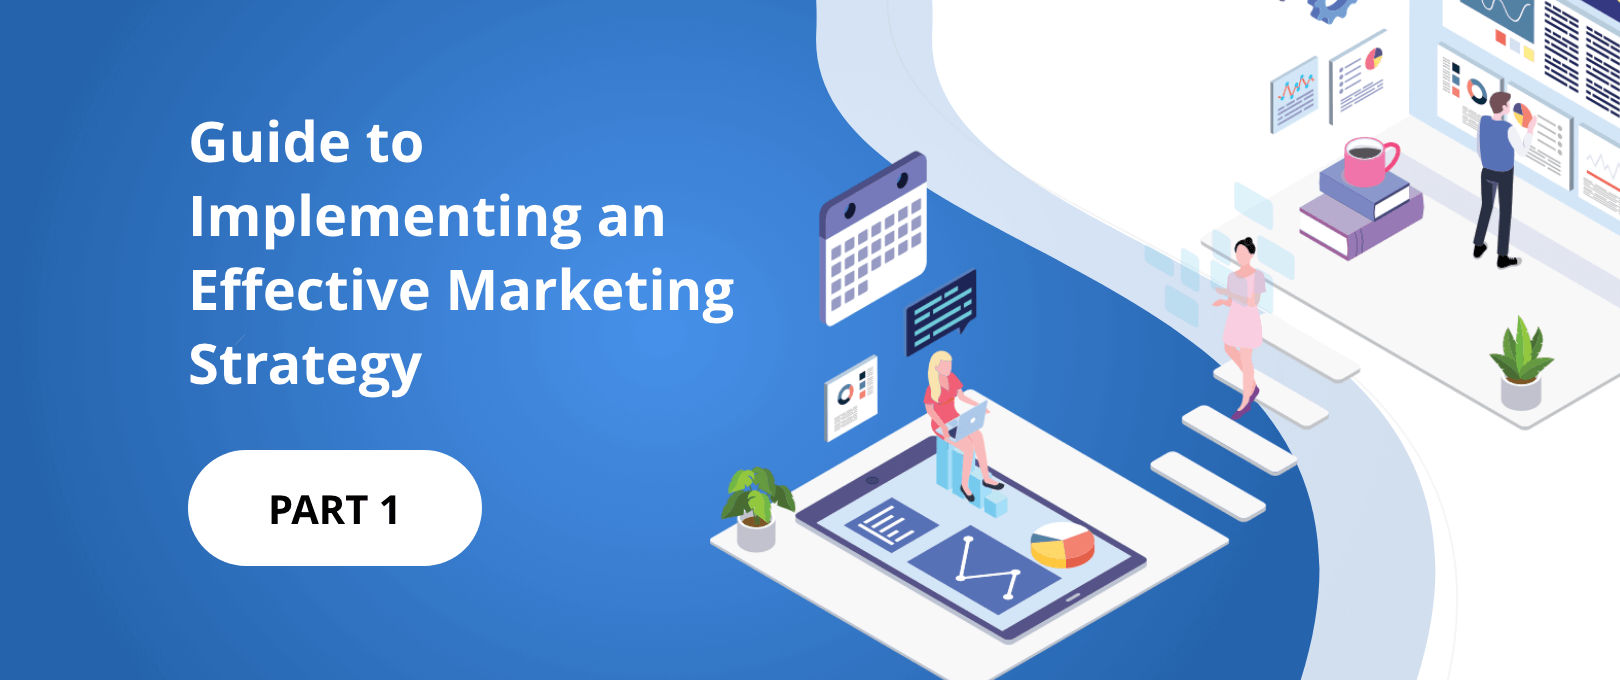 Marketing Strategy Guide